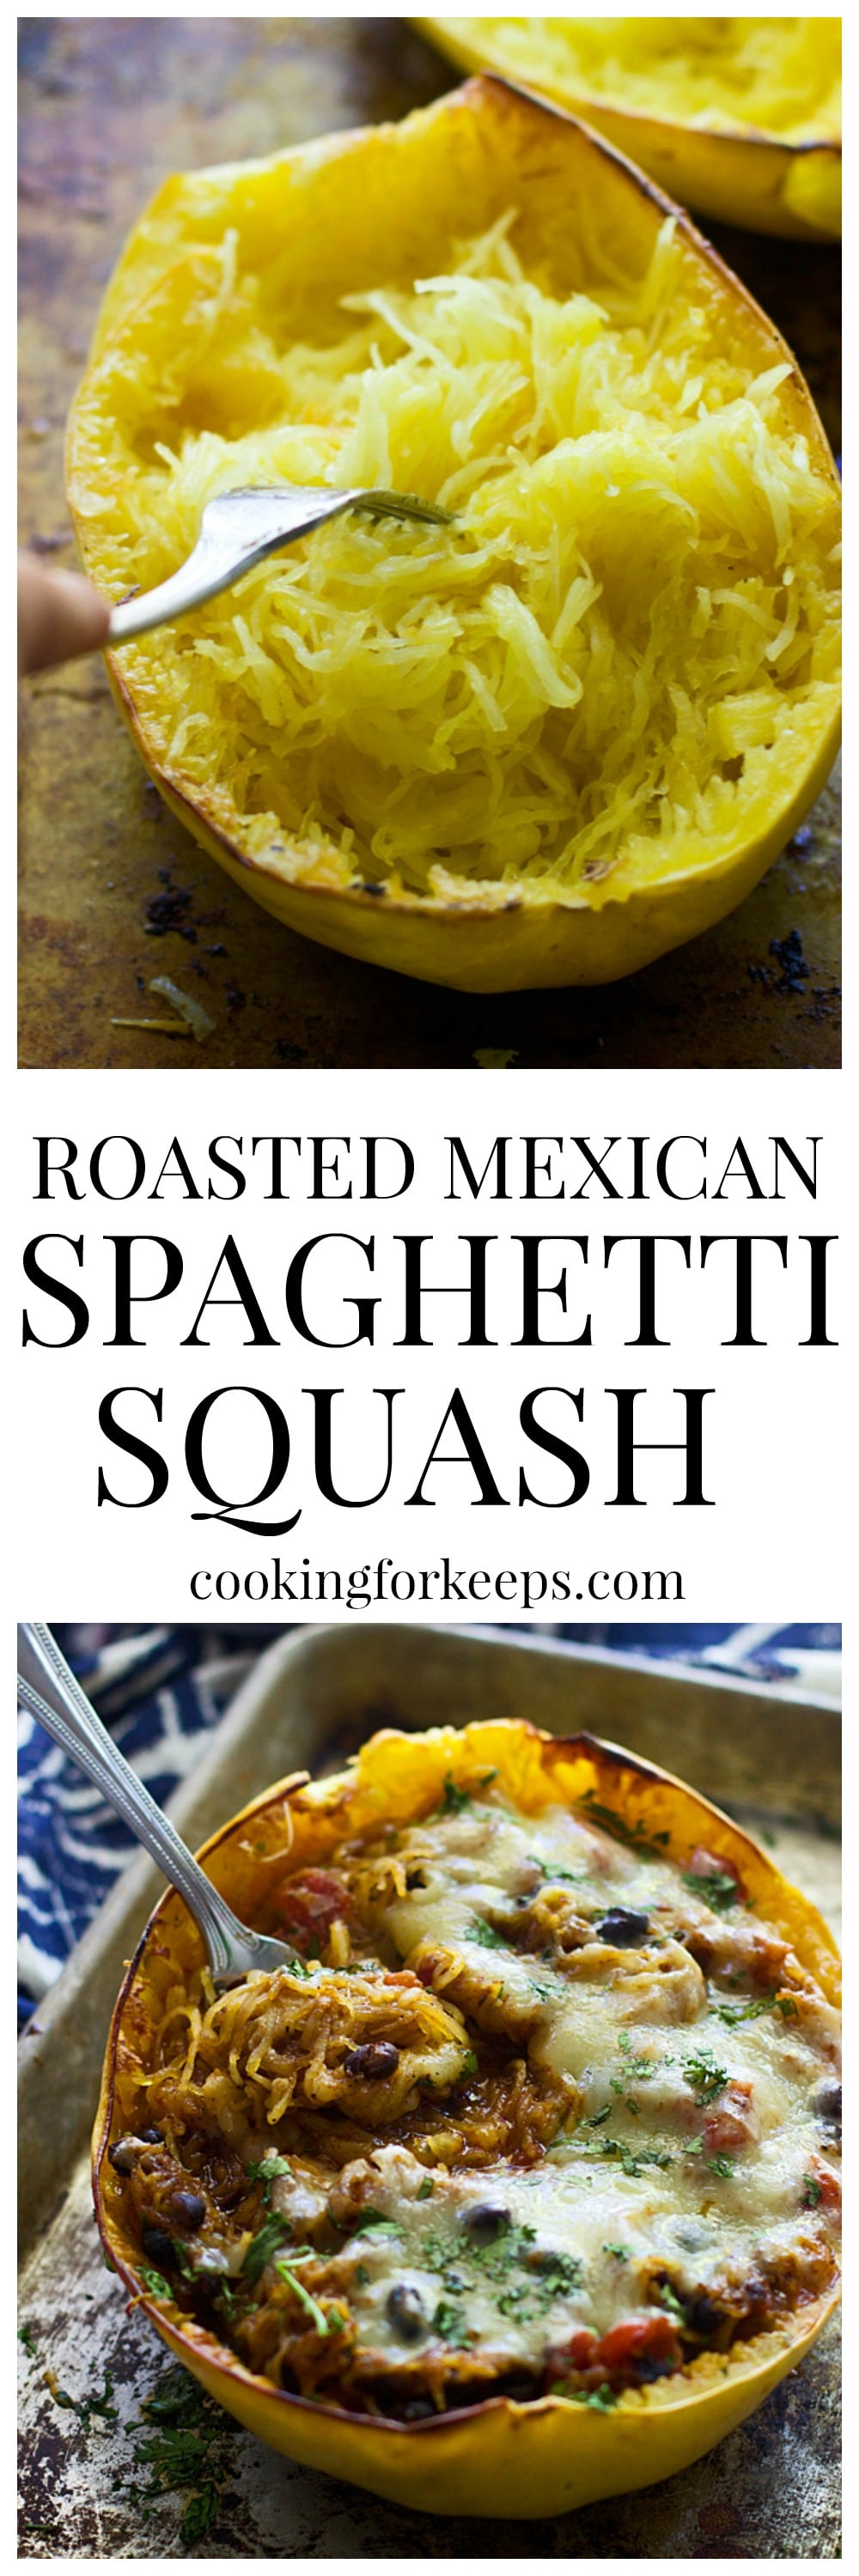 Roasted Mexican Spaghetti Squash